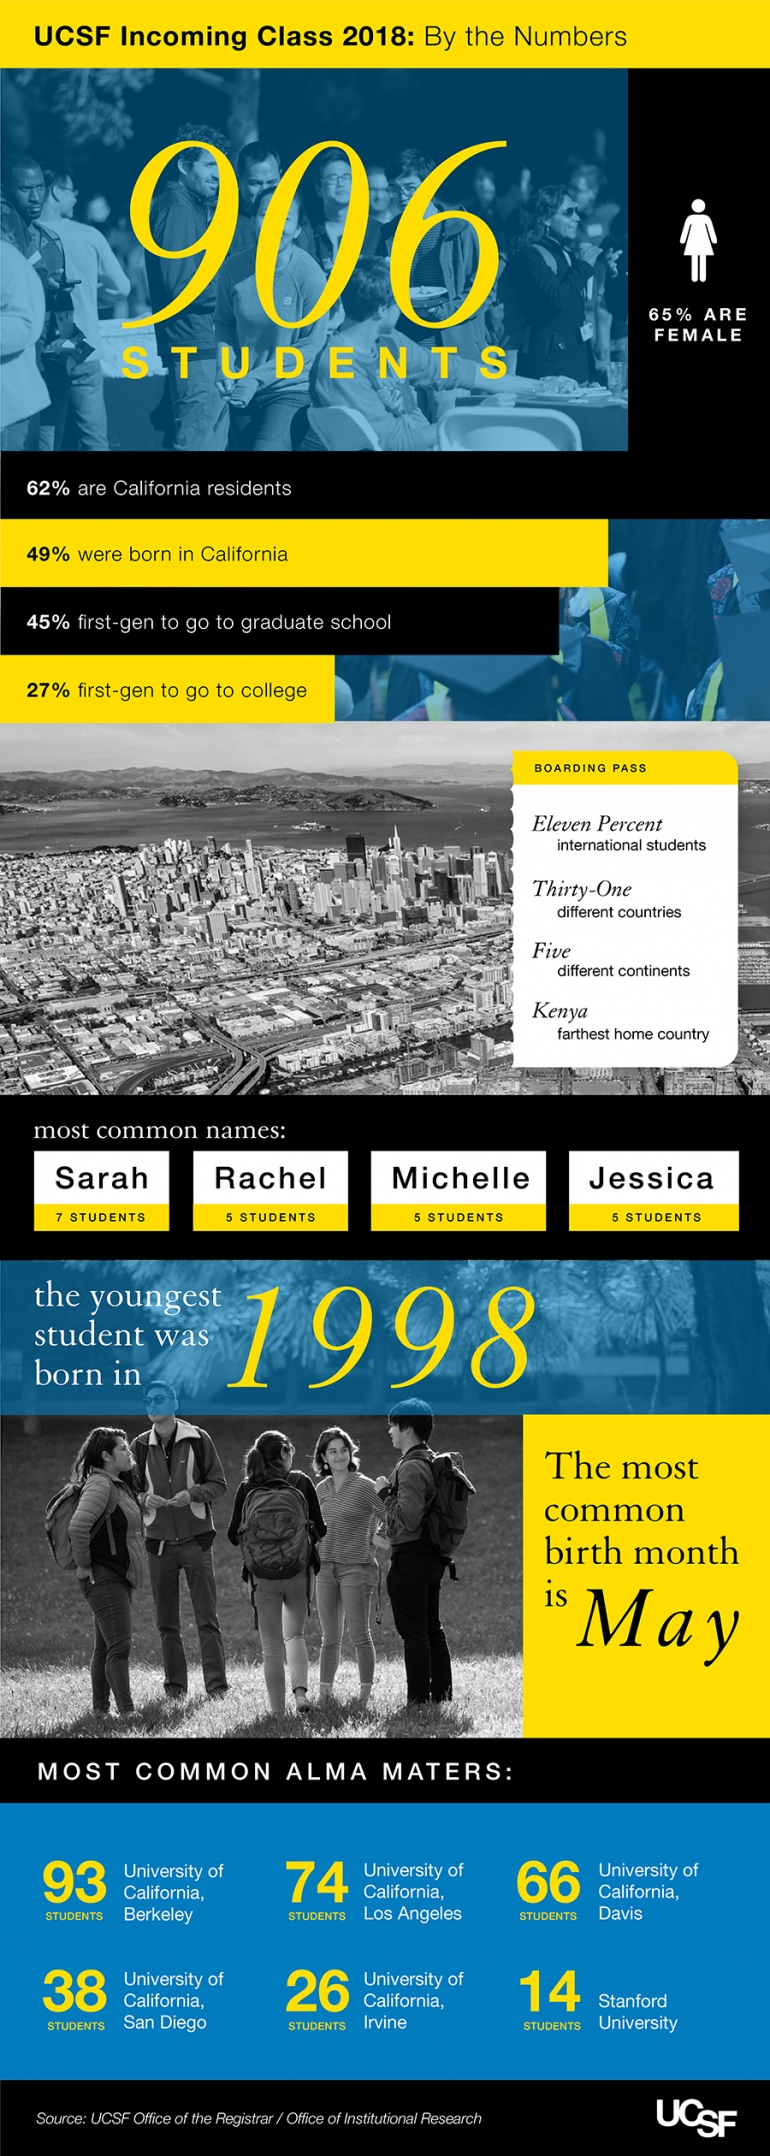 UCSF Incoming Class 2018: By the Numbers | UC San Francisco